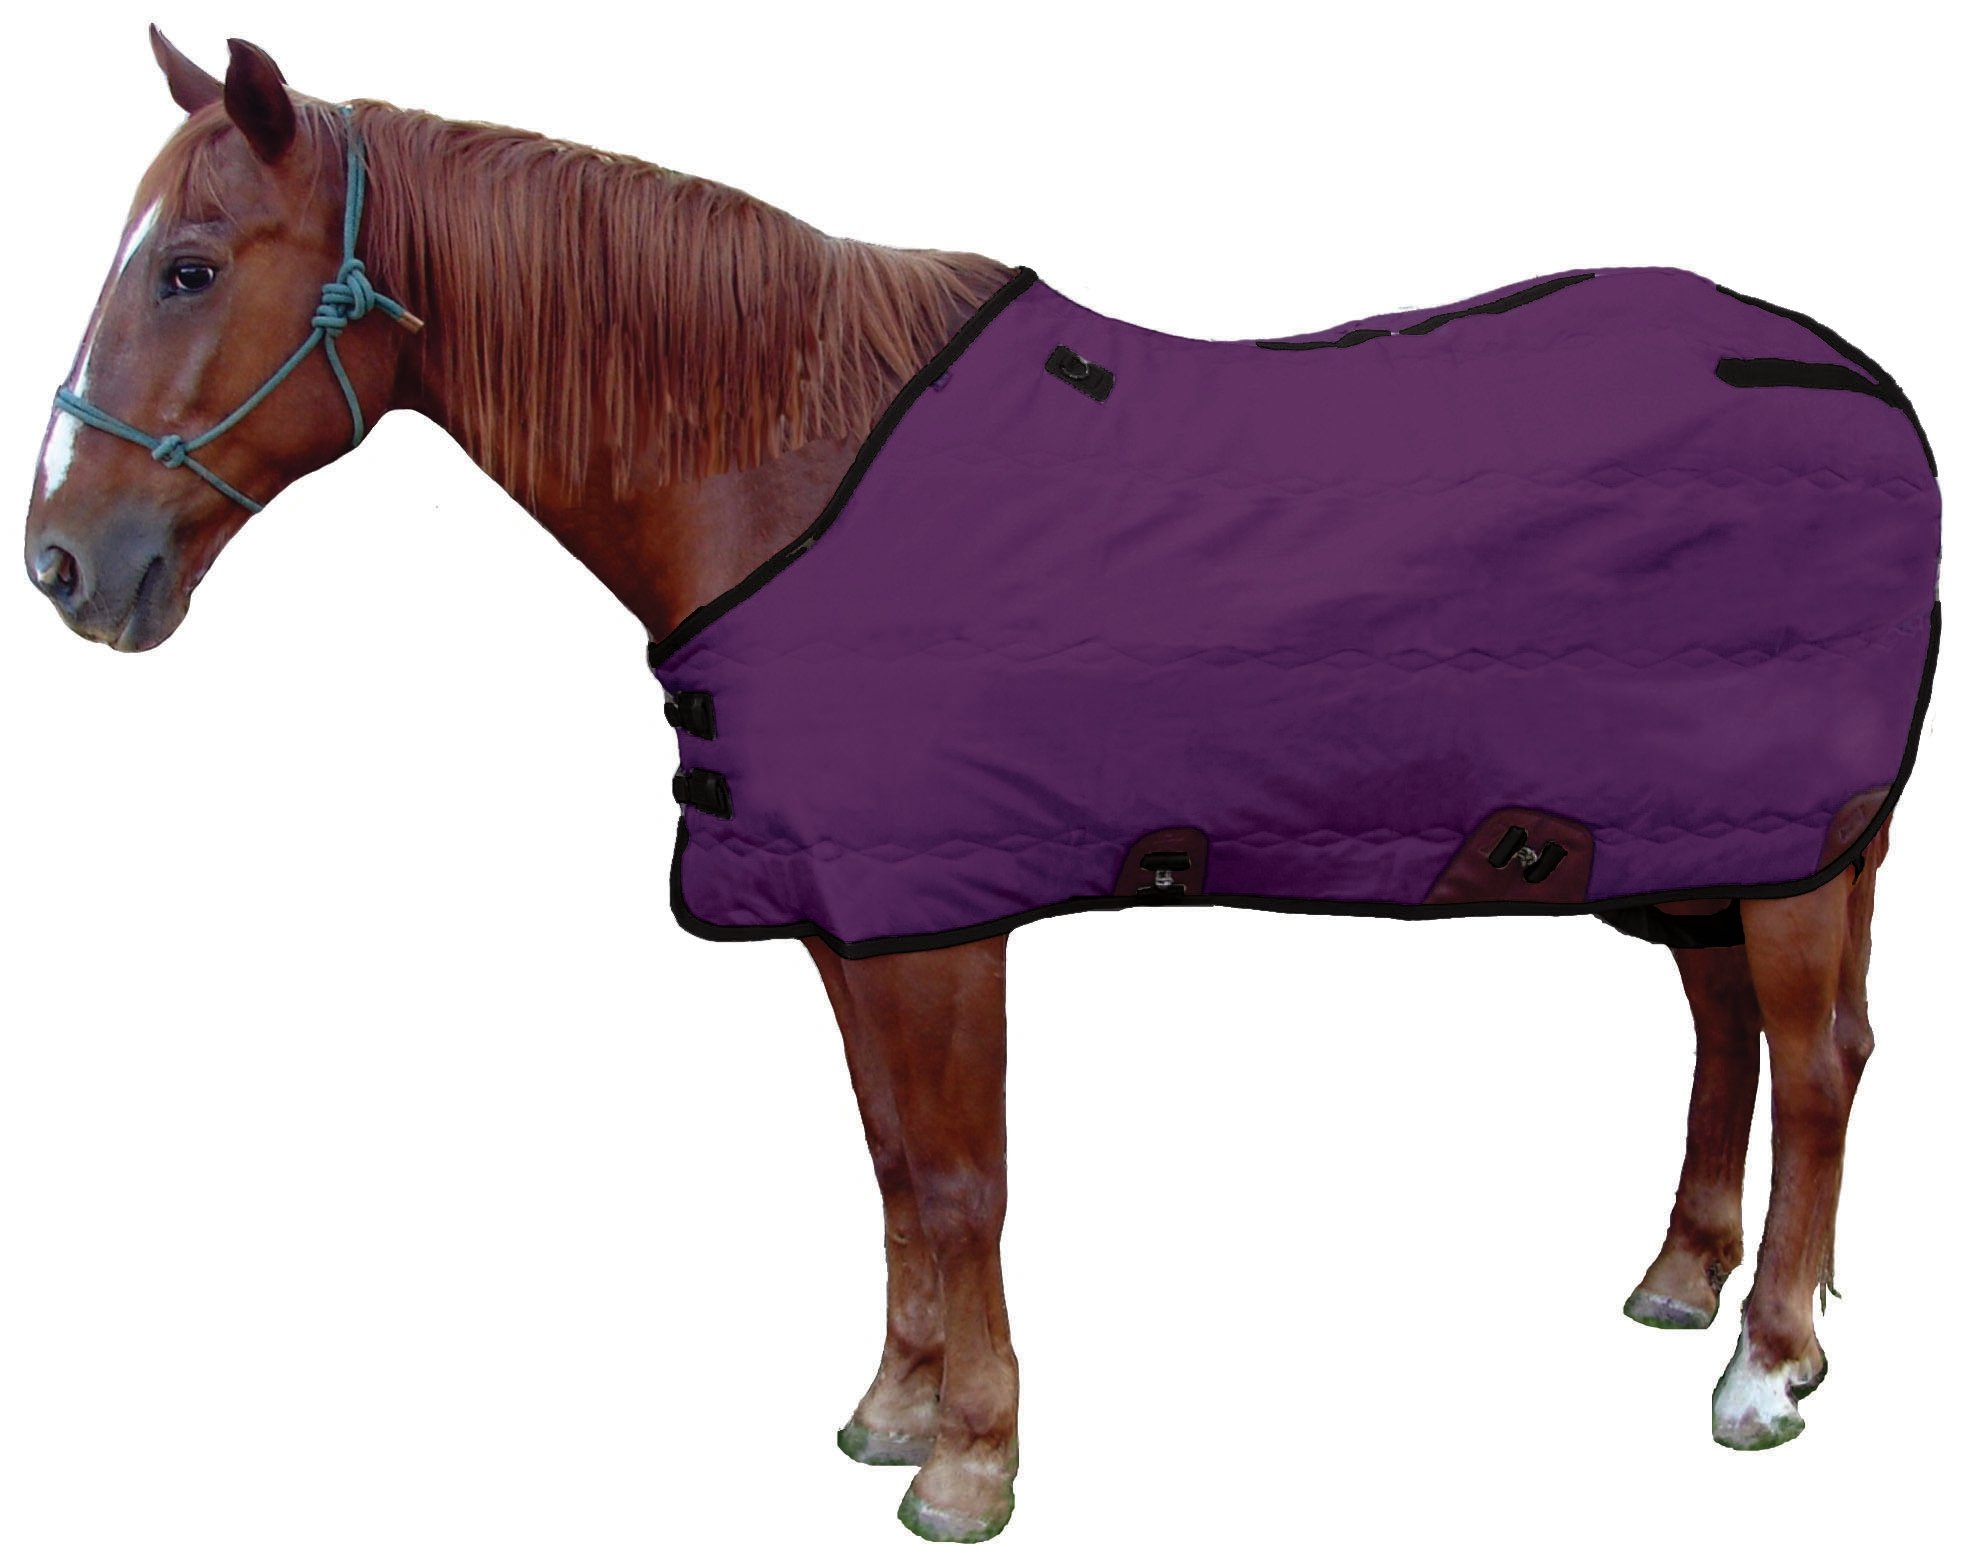 Royal Hamilton SB-420D-PR-S Stable Horse Blanket Purple with Gray Trim, 75-Inch Small by Royal Hamilton (Image #1)